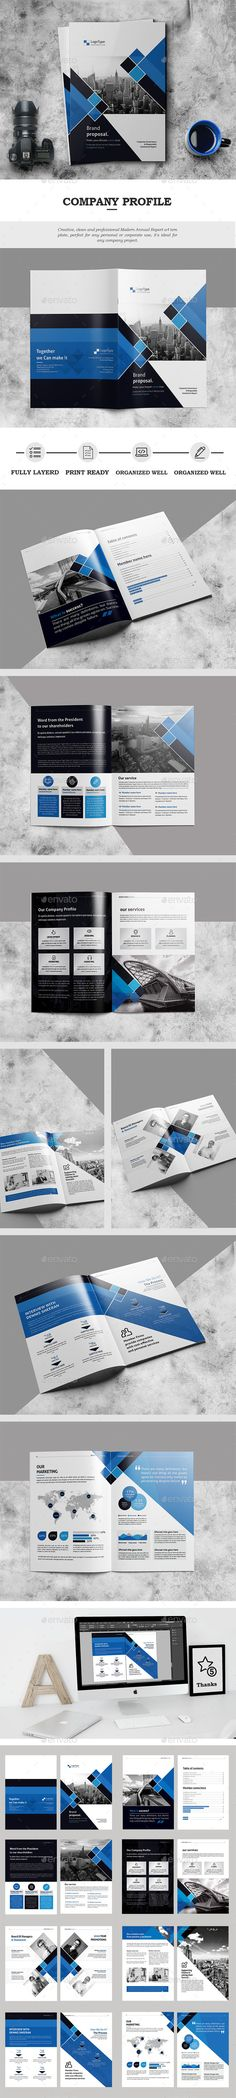 The Company Profile — InDesign Template #elegant #design • Download ➝ https://graphicriver.net/item/the-company-profile/18525750?ref=pxcr